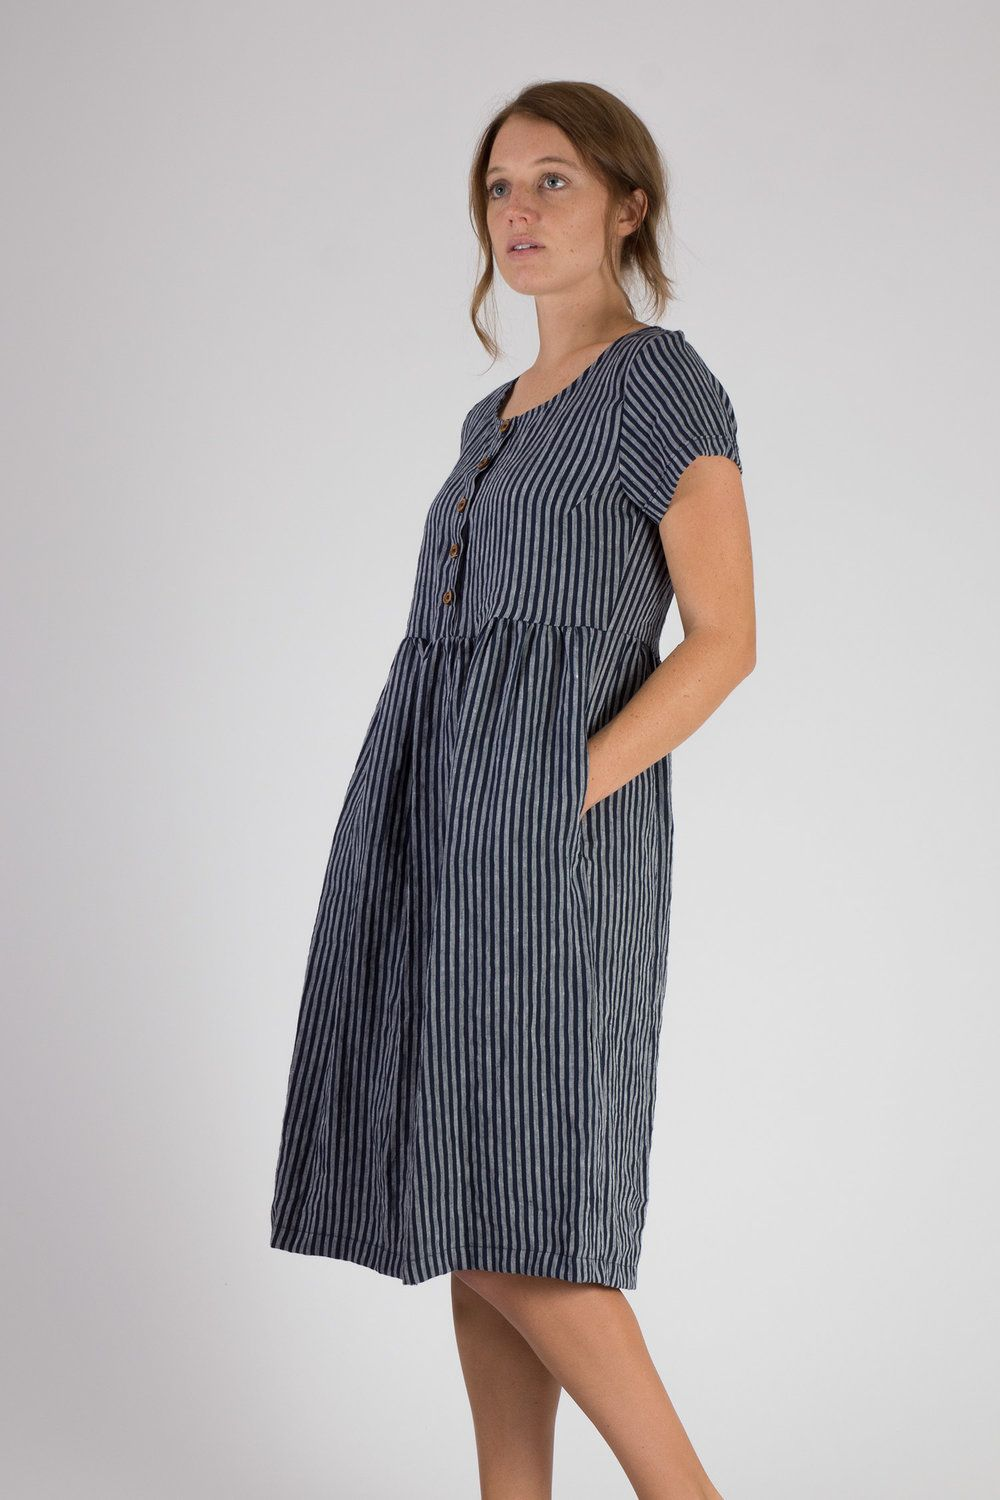 Linen dress: fashion models and styles 28